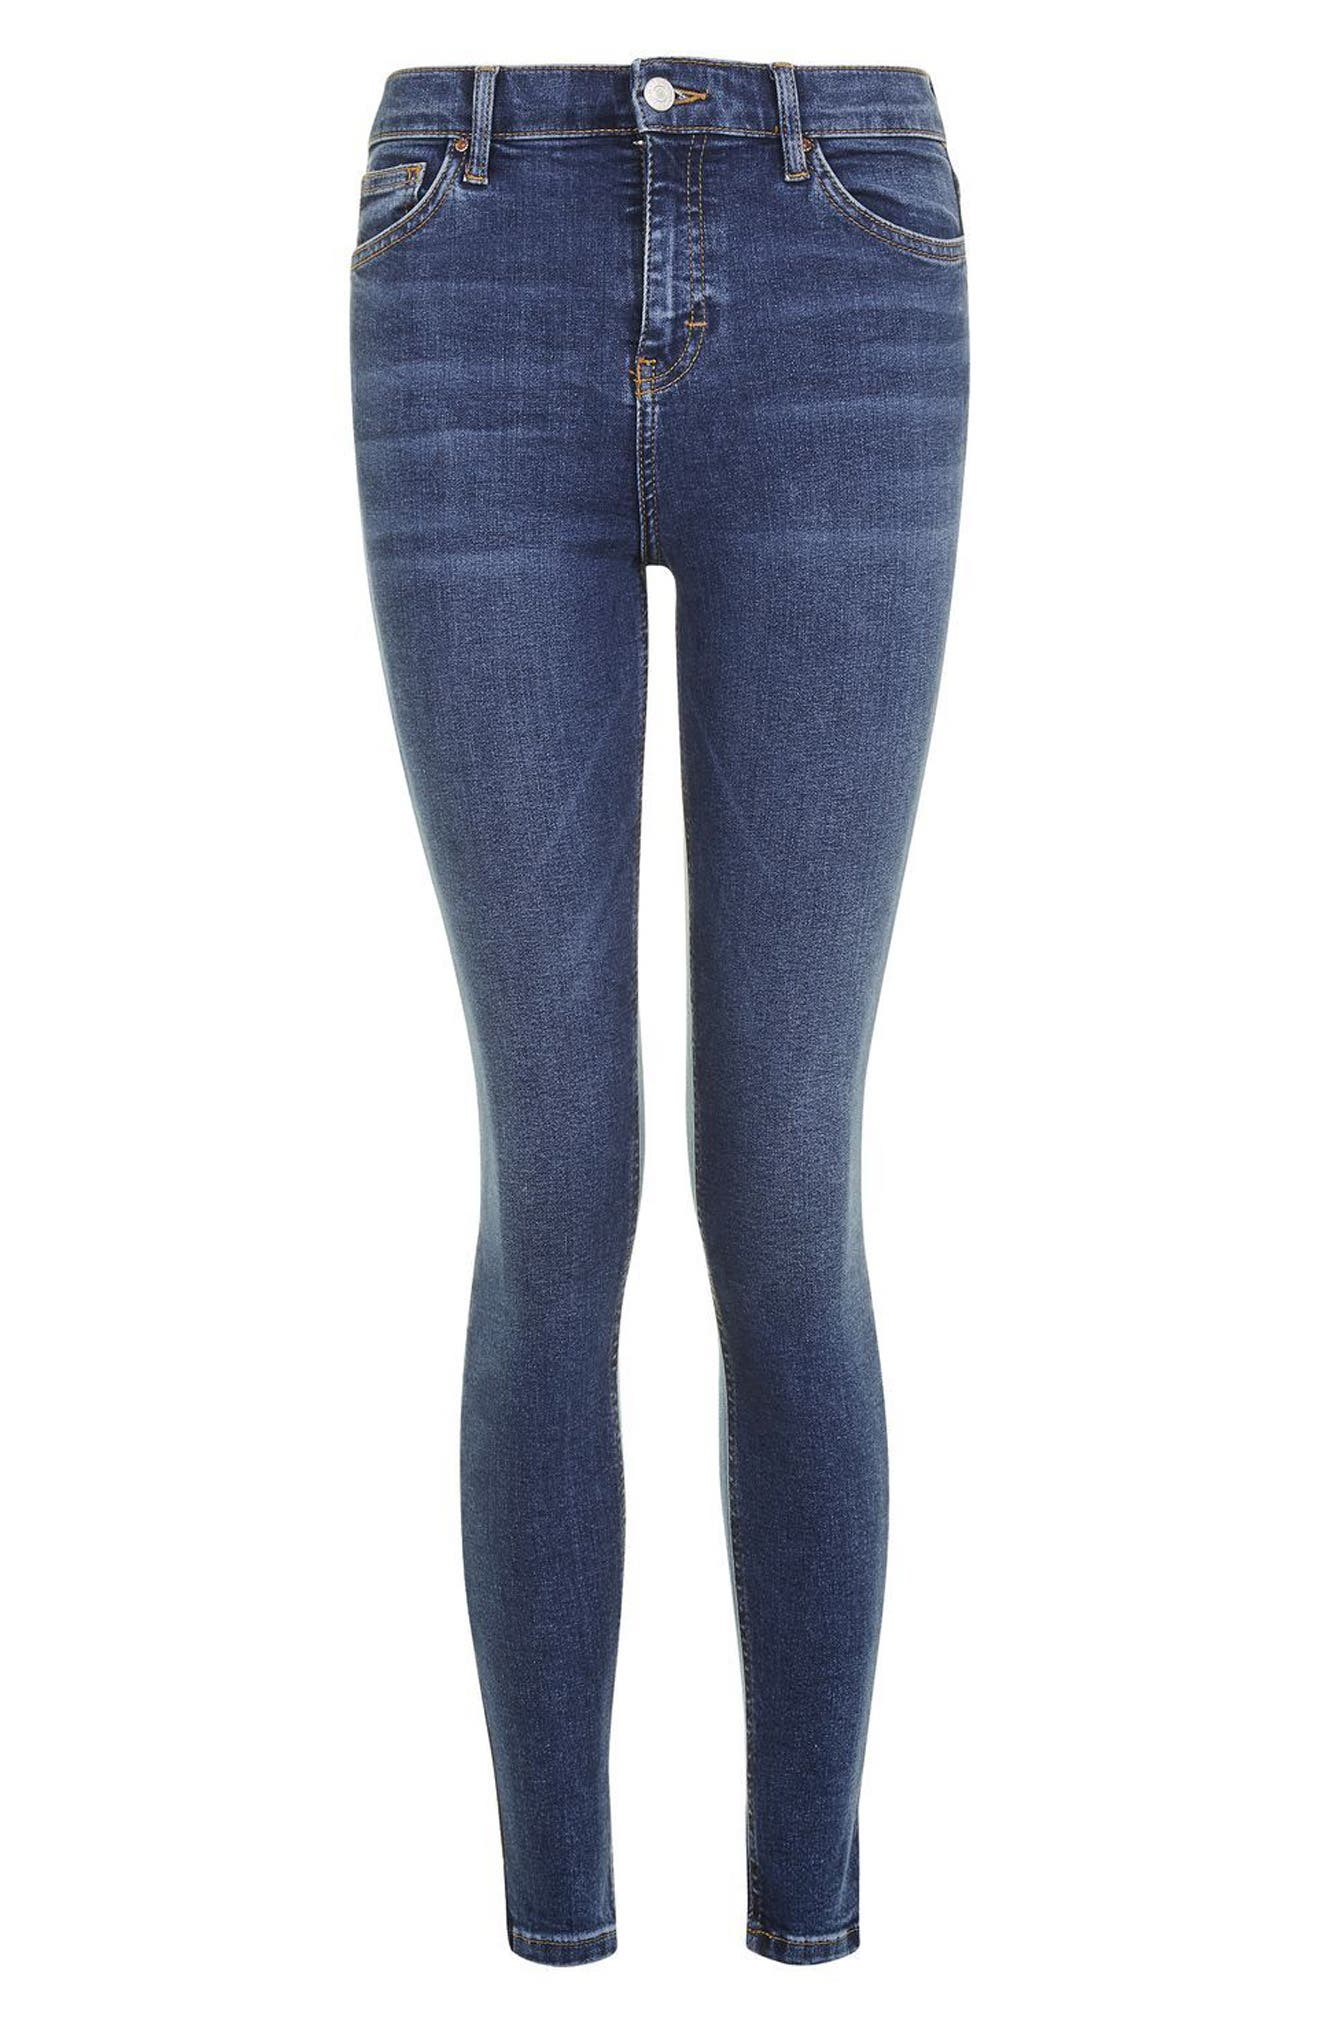 Jamie Indigo High Waist Skinny Jeans,                             Alternate thumbnail 4, color,                             Indigo